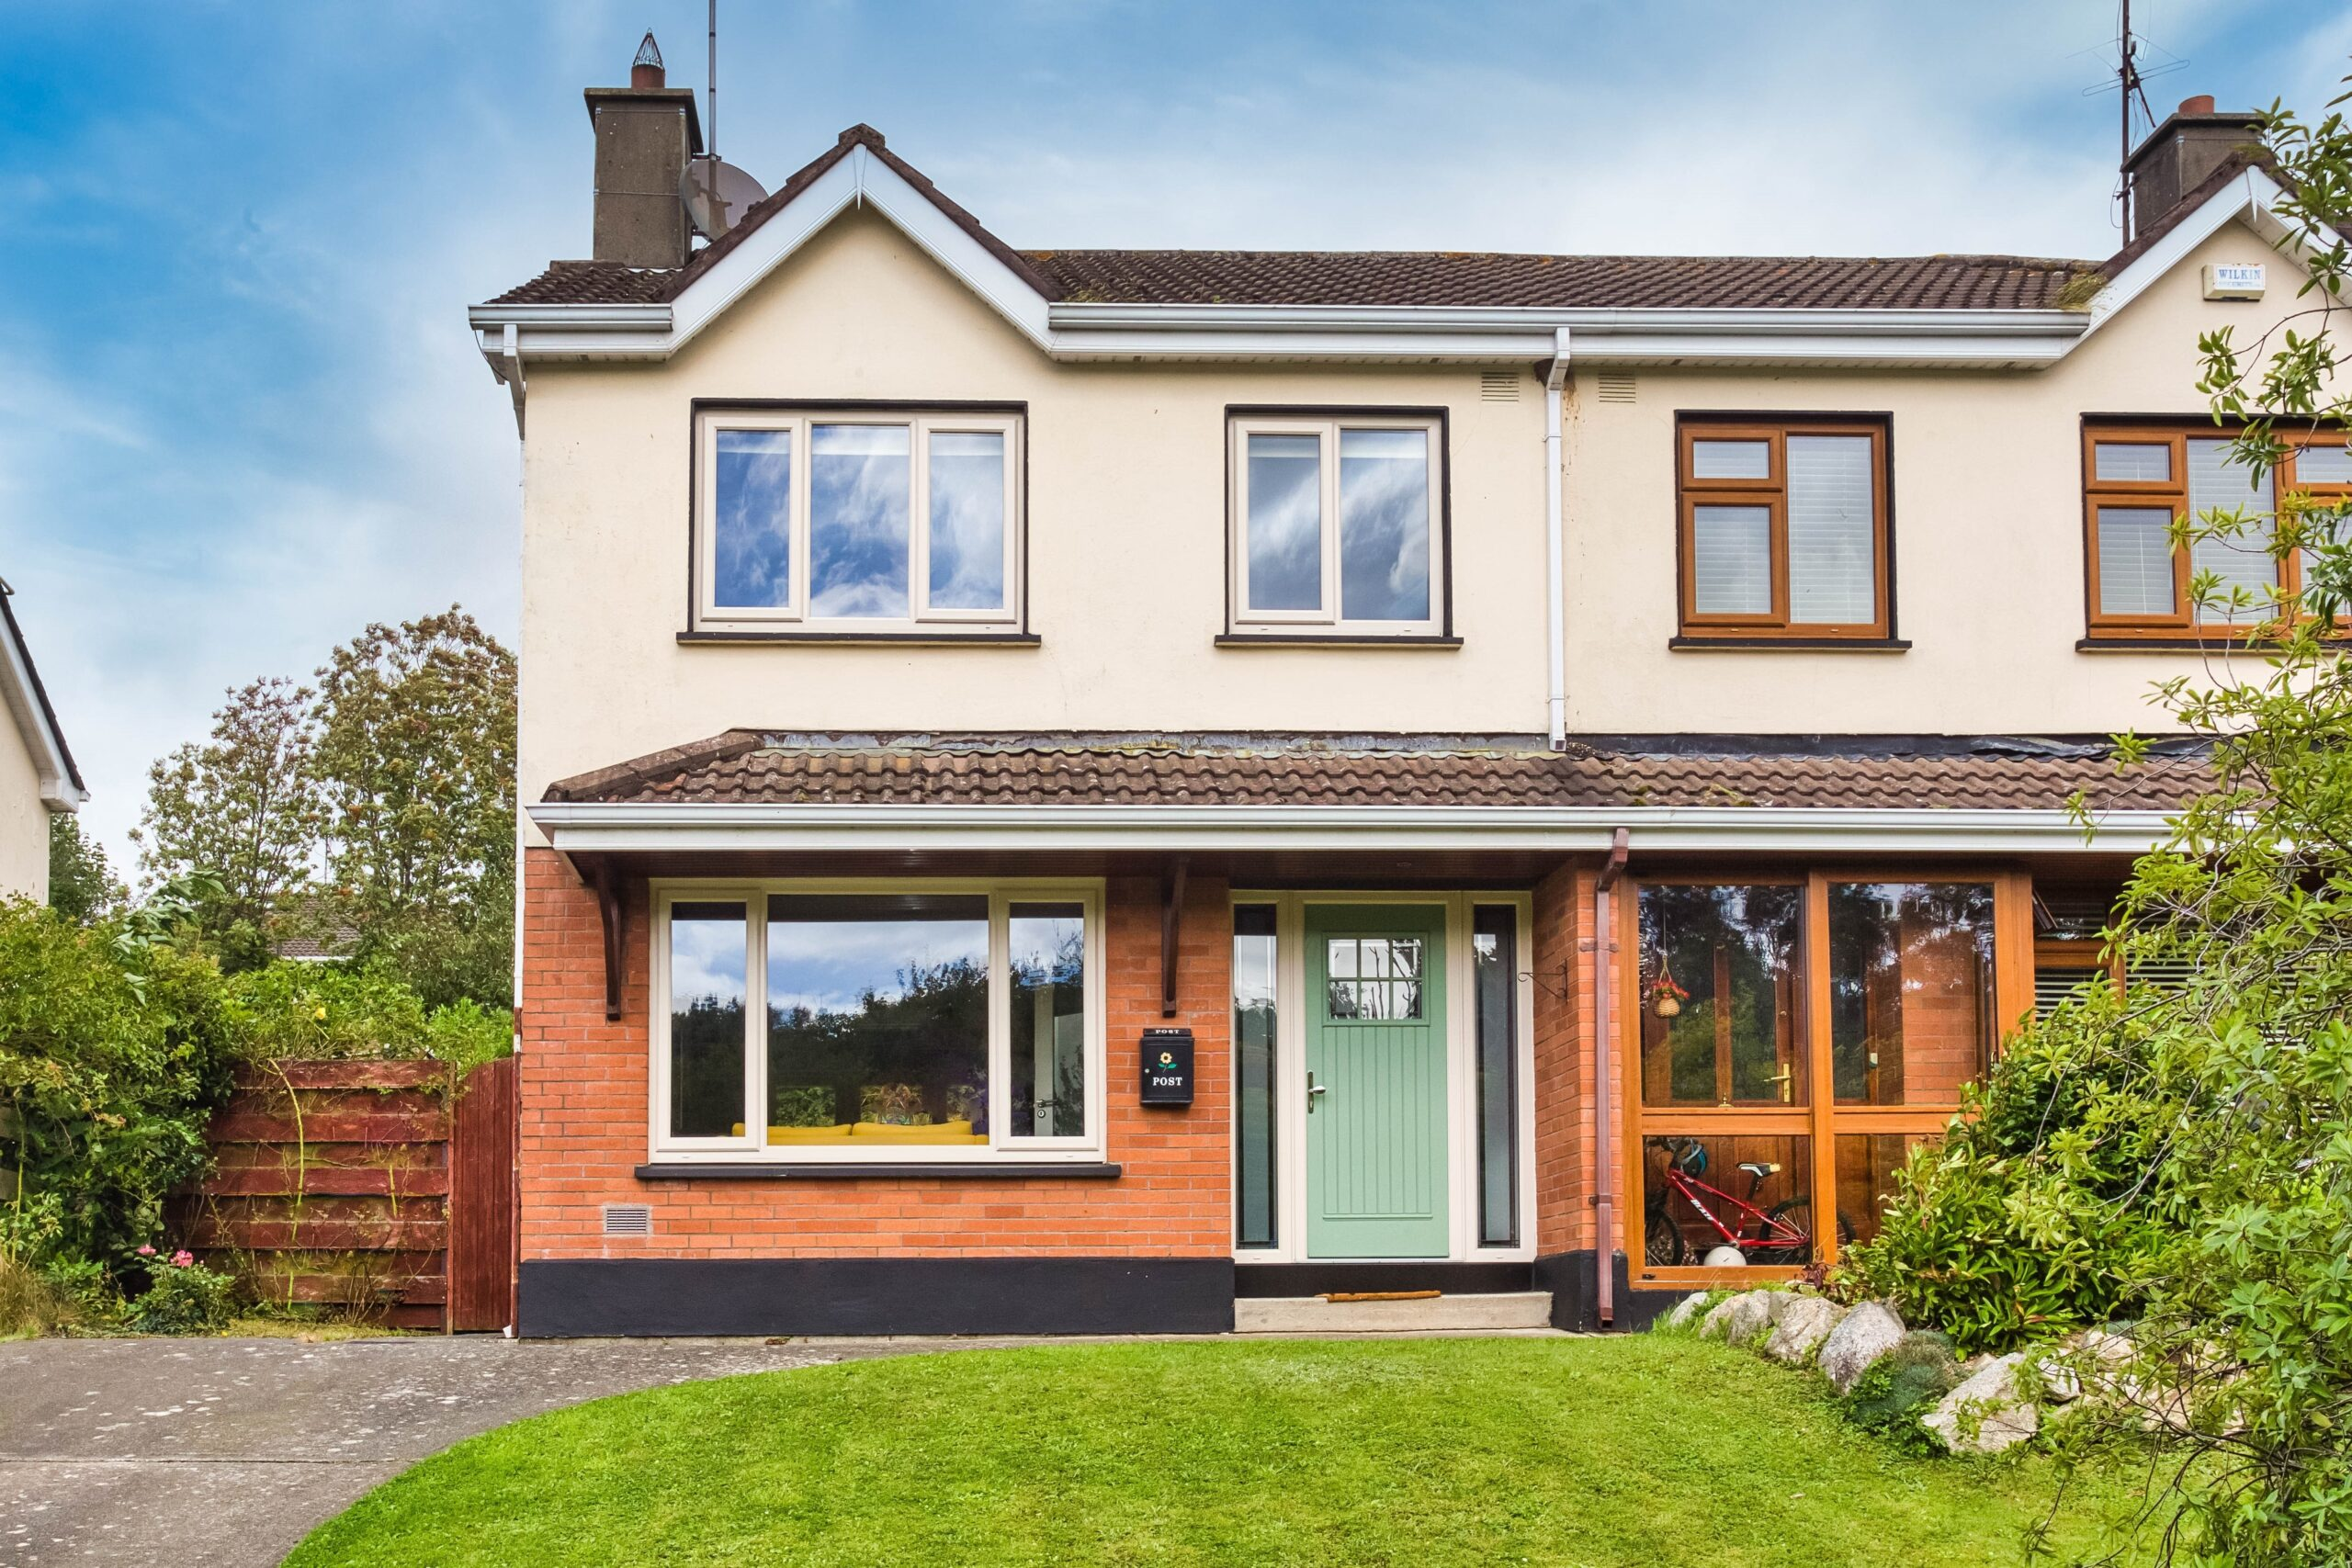 6 Garden Village Court, Kilpedder, Co Wicklow